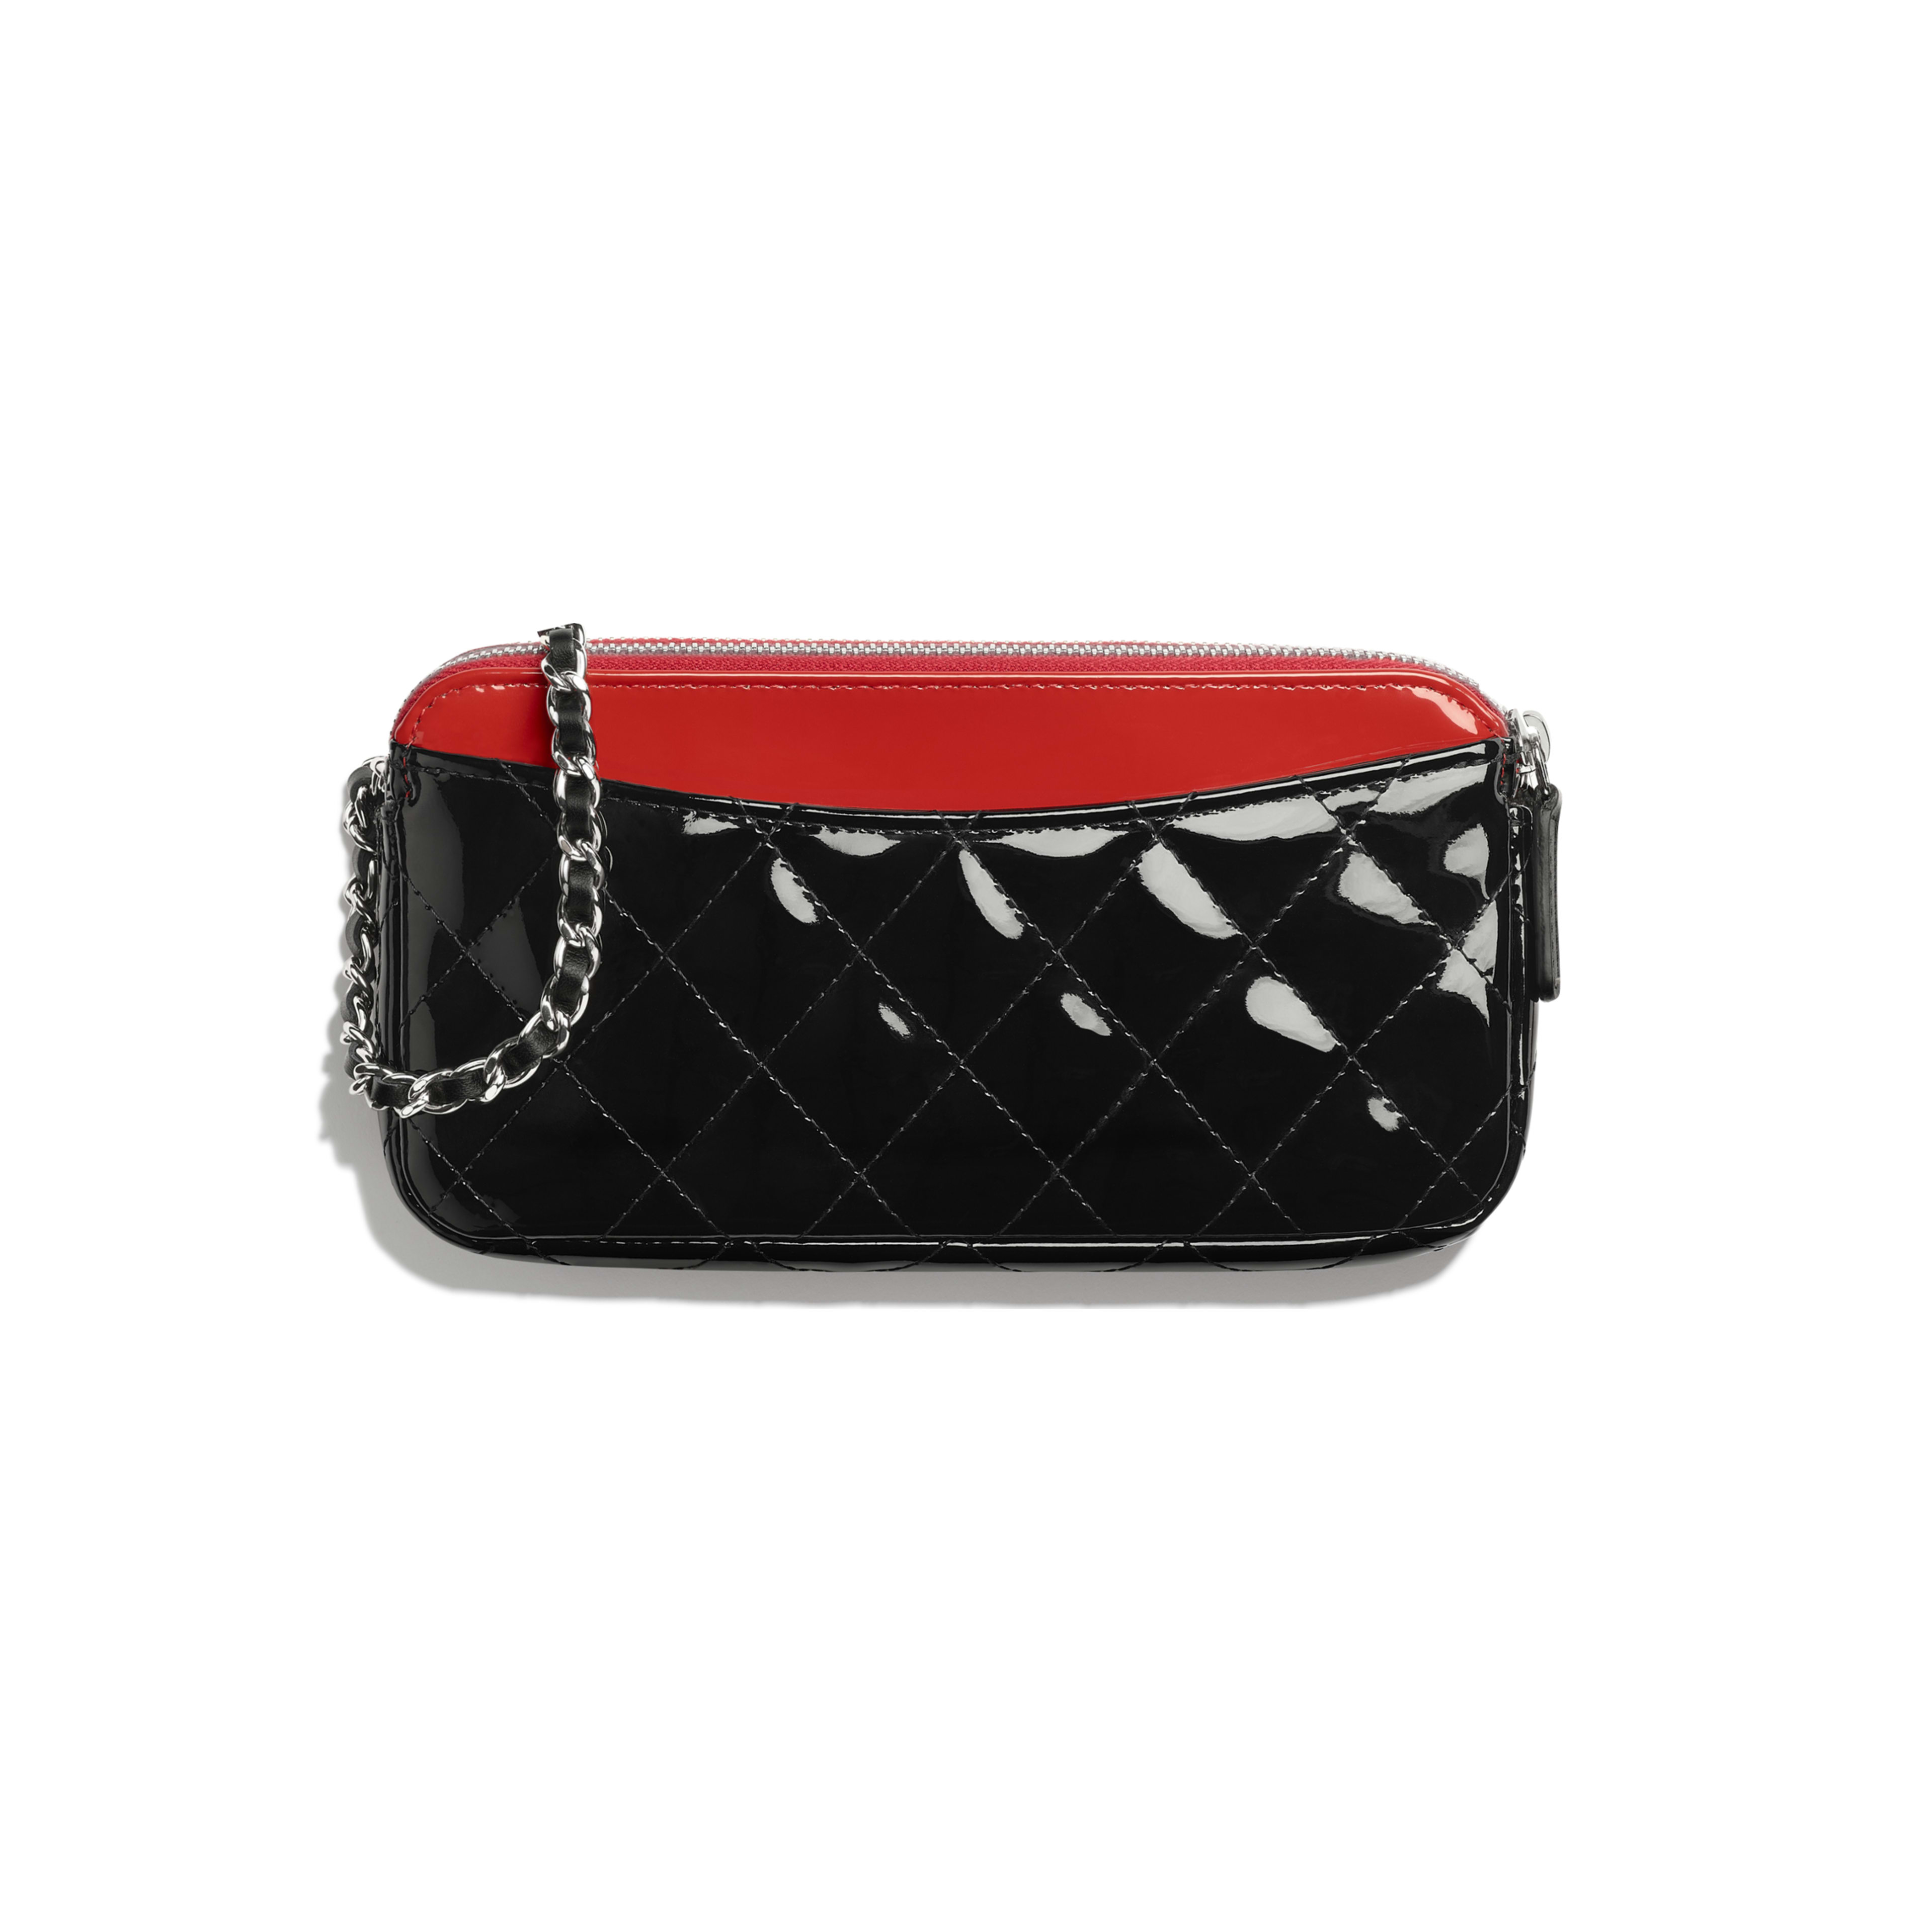 Classic Clutch With Chain - Red & Black - Patent Calfskin - Alternative view - see full sized version